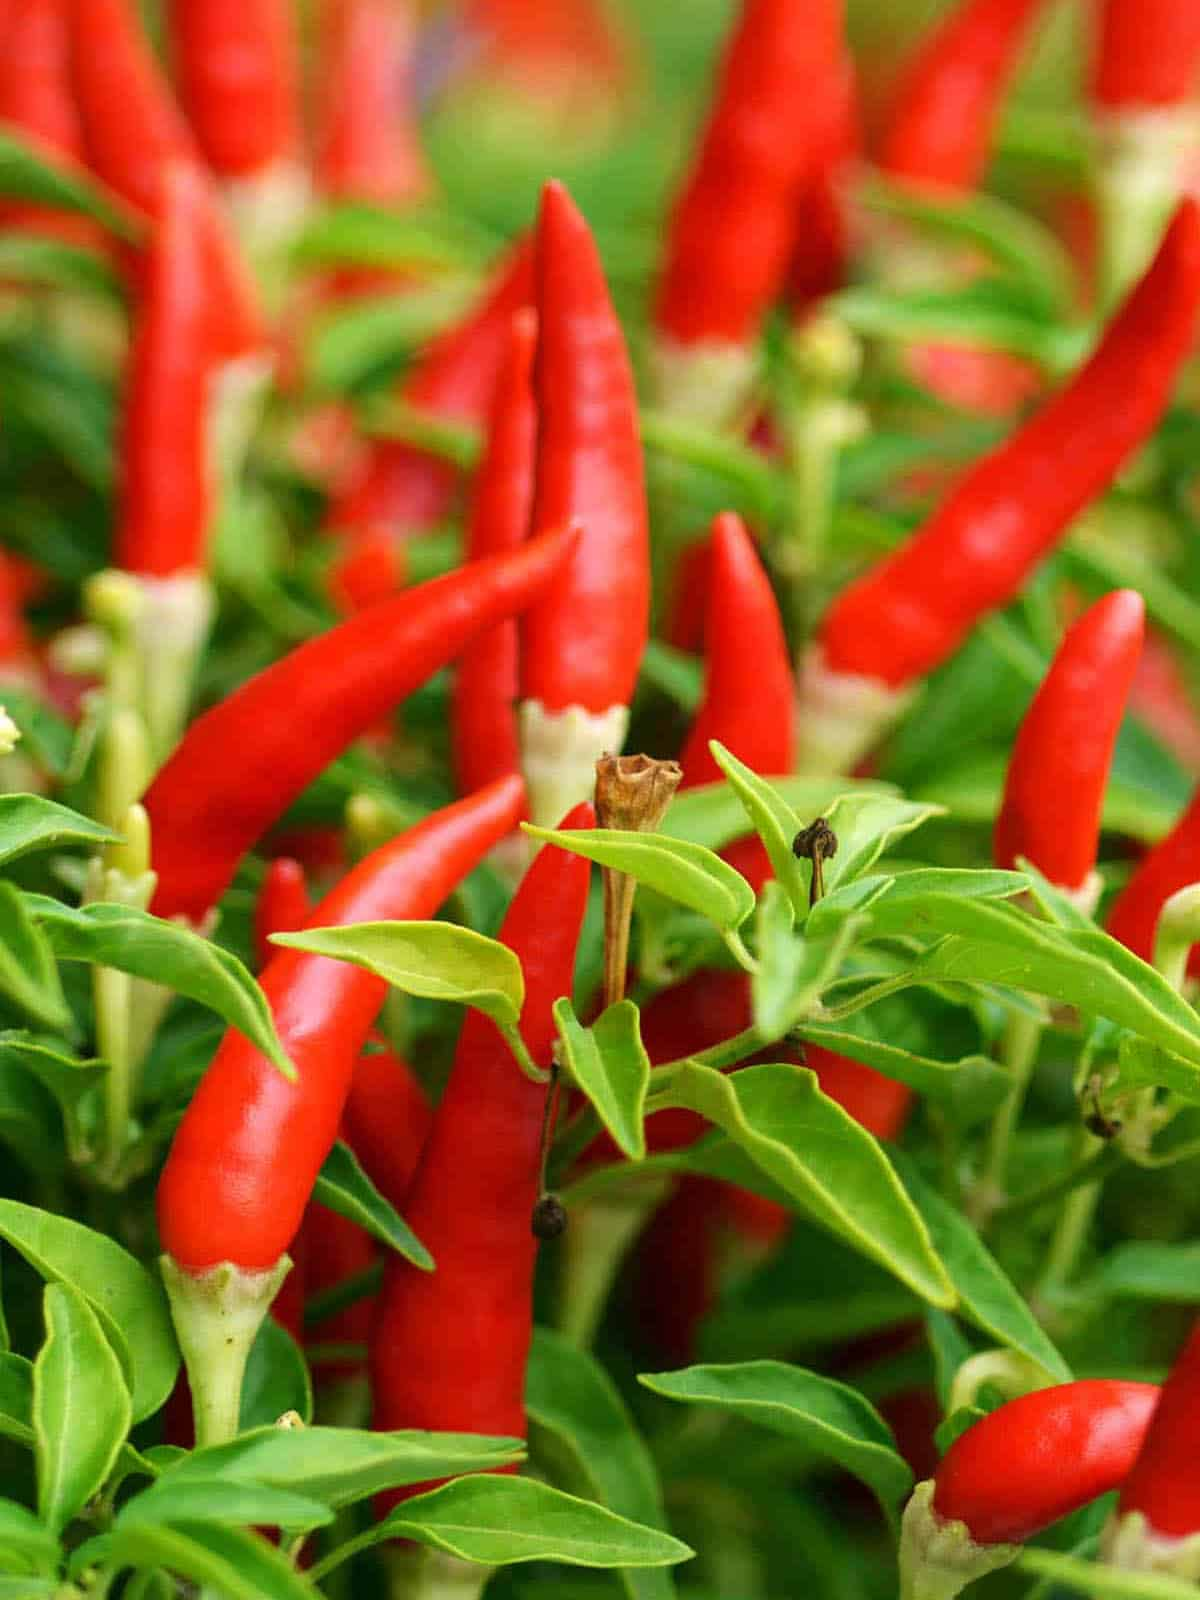 How Do You Measure Chili Pepper Heat? (Story)